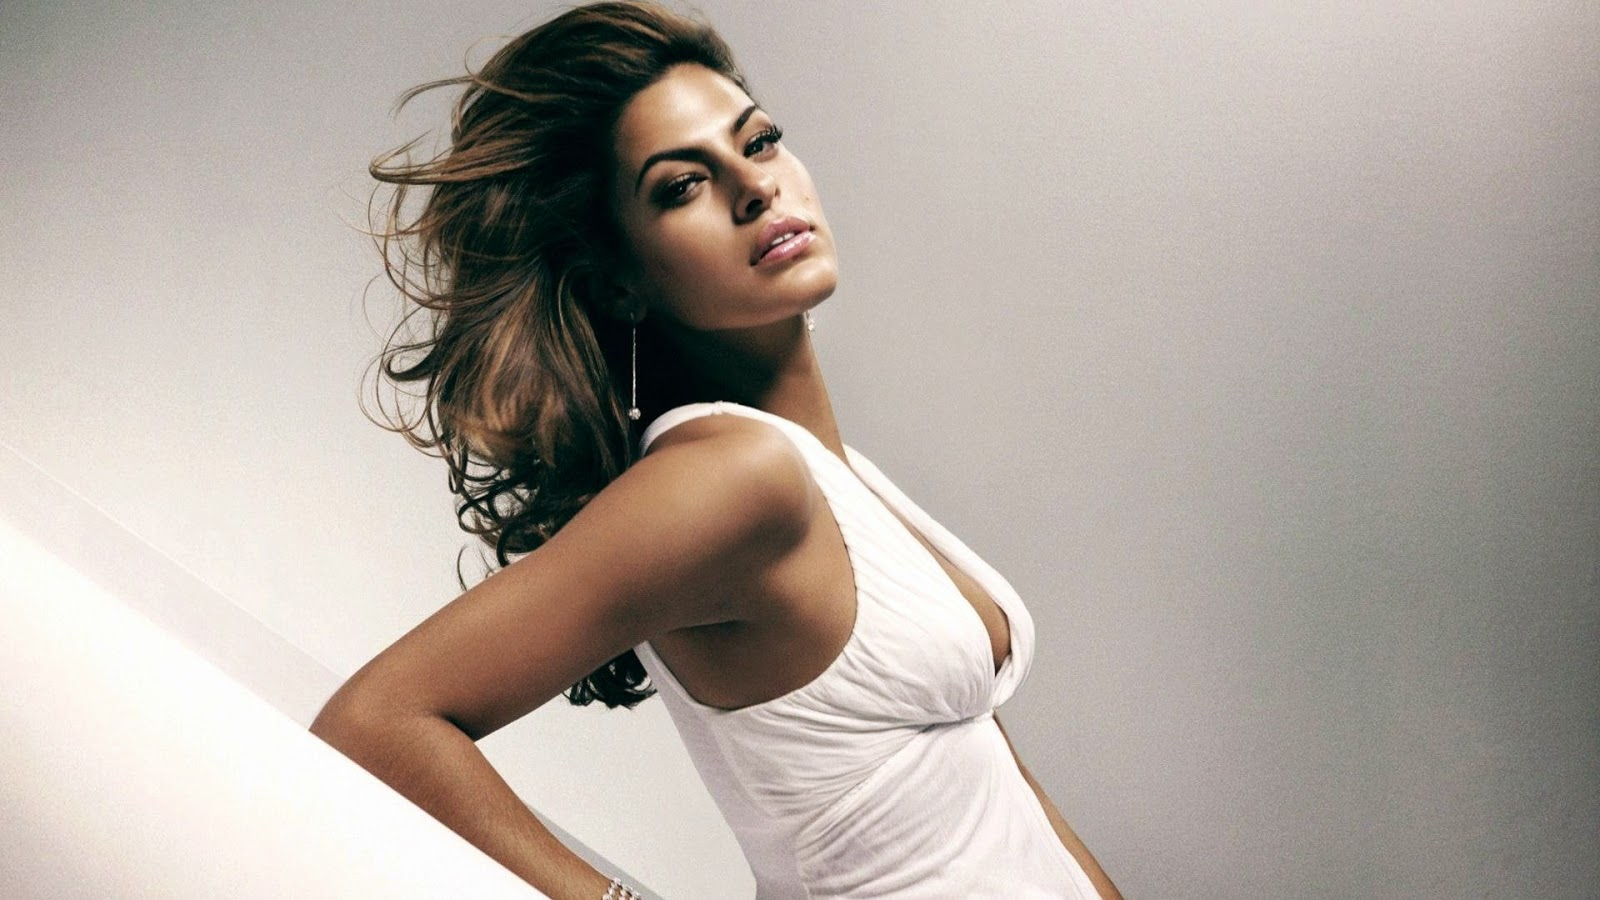 Eva mendes in fast and furious movie actress wallpaper